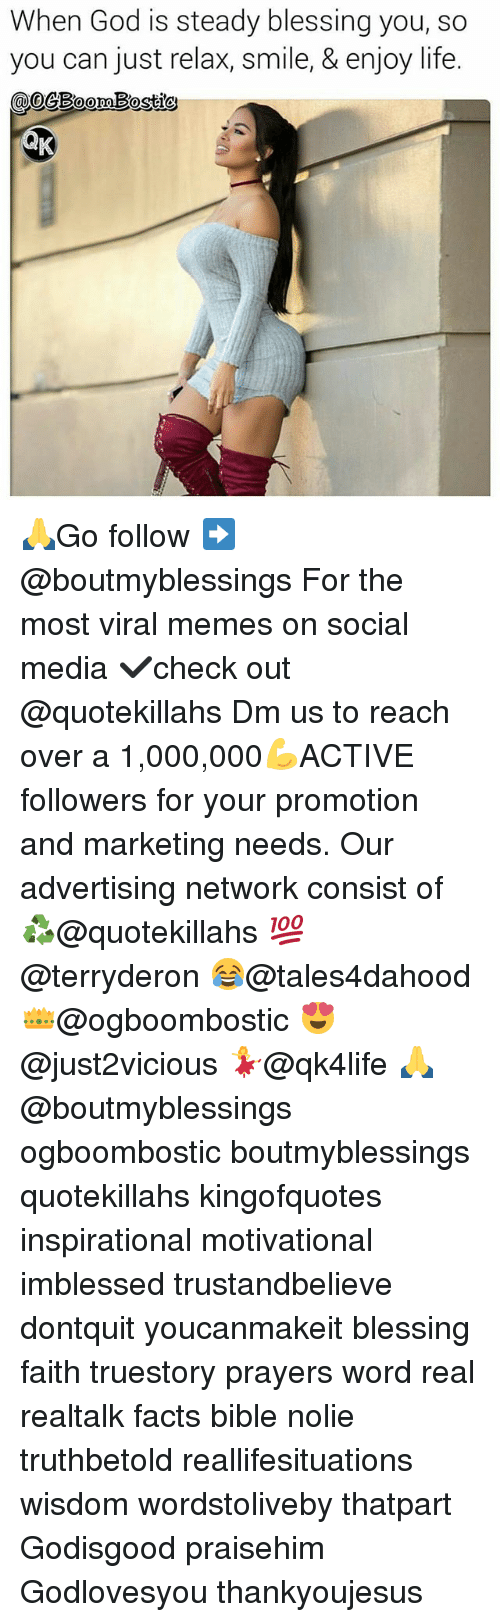 Memes, 🤖, and Media: When God is steady blessing you, so  so  you can just relax, life. 🙏Go follow ➡@boutmyblessings For the most viral memes on social media ✔check out @quotekillahs Dm us to reach over a 1,000,000💪ACTIVE followers for your promotion and marketing needs. Our advertising network consist of ♻@quotekillahs 💯@terryderon 😂@tales4dahood 👑@ogboombostic 😍@just2vicious 💃@qk4life 🙏@boutmyblessings ogboombostic boutmyblessings quotekillahs kingofquotes inspirational motivational imblessed trustandbelieve dontquit youcanmakeit blessing faith truestory prayers word real realtalk facts bible nolie truthbetold reallifesituations wisdom wordstoliveby thatpart Godisgood praisehim Godlovesyou thankyoujesus